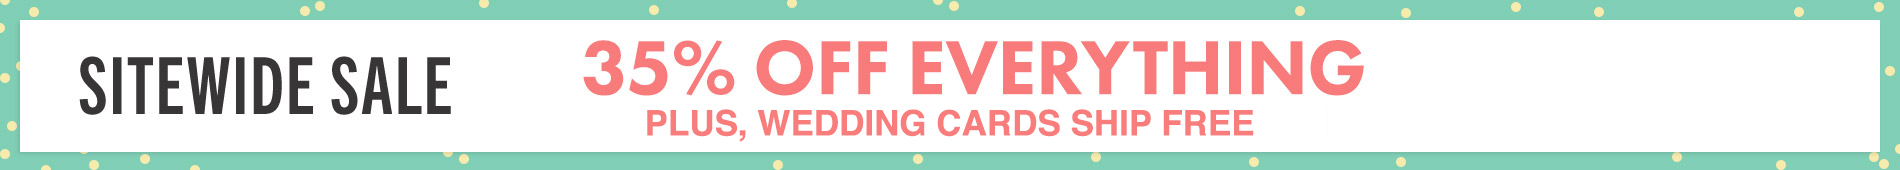 Current Promo: Sitewide Sale 35% Off Everything Plus, Wedding Cards Ship Free